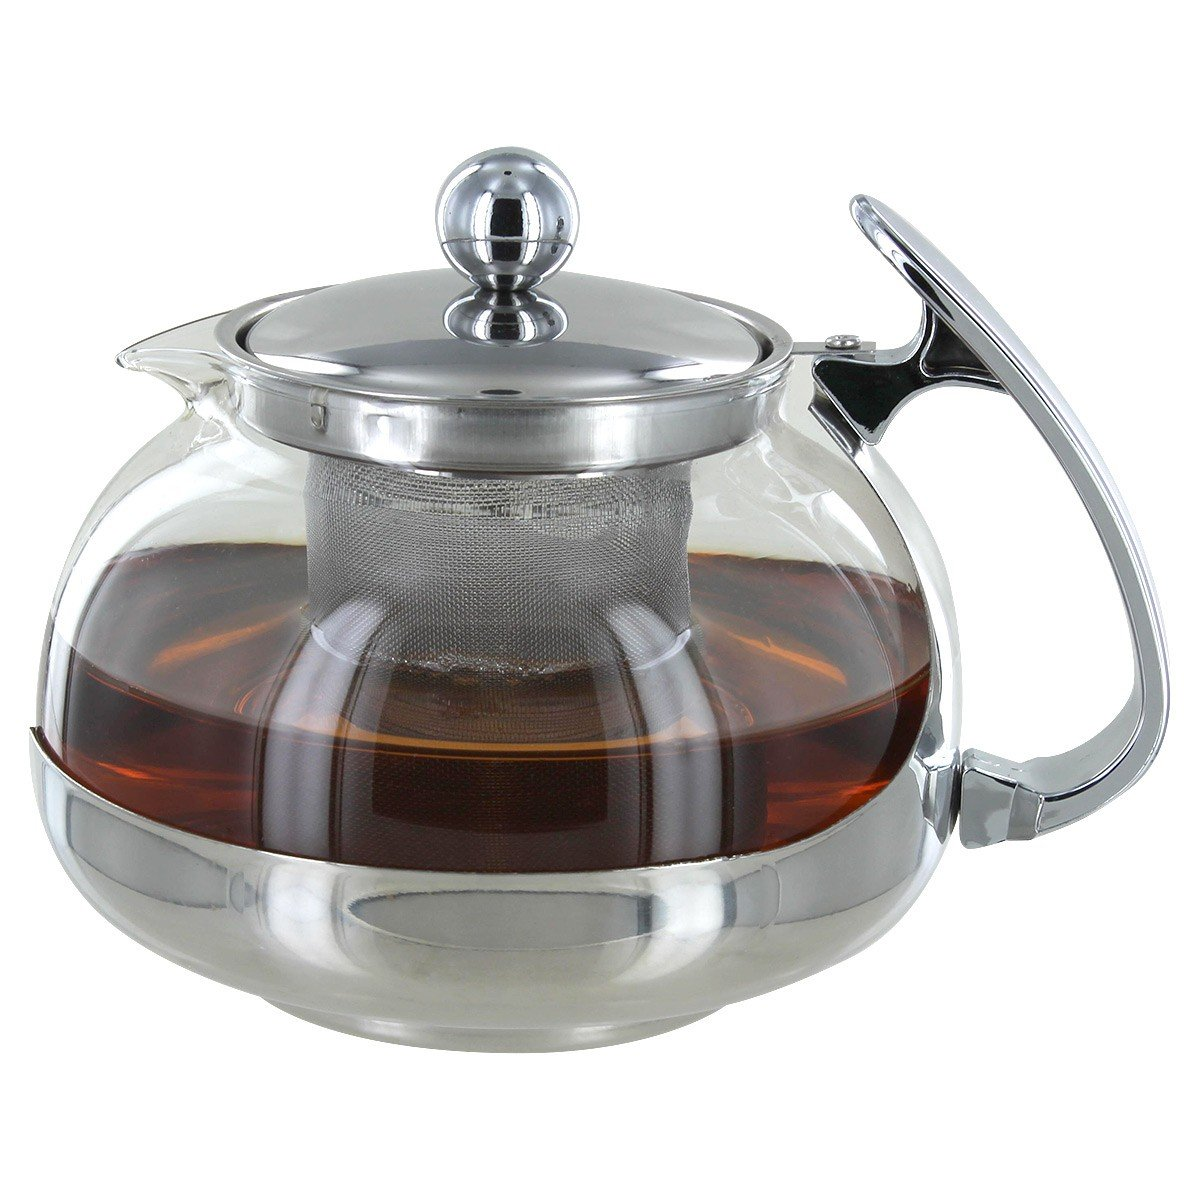 Stainless Steel Heat Resistant Glass 3-Cup Tea & Coffee Pot w/ Rust Free Strainer Infuser Basket, 24 Fluid Ounces (700 ML) by Pride Of India